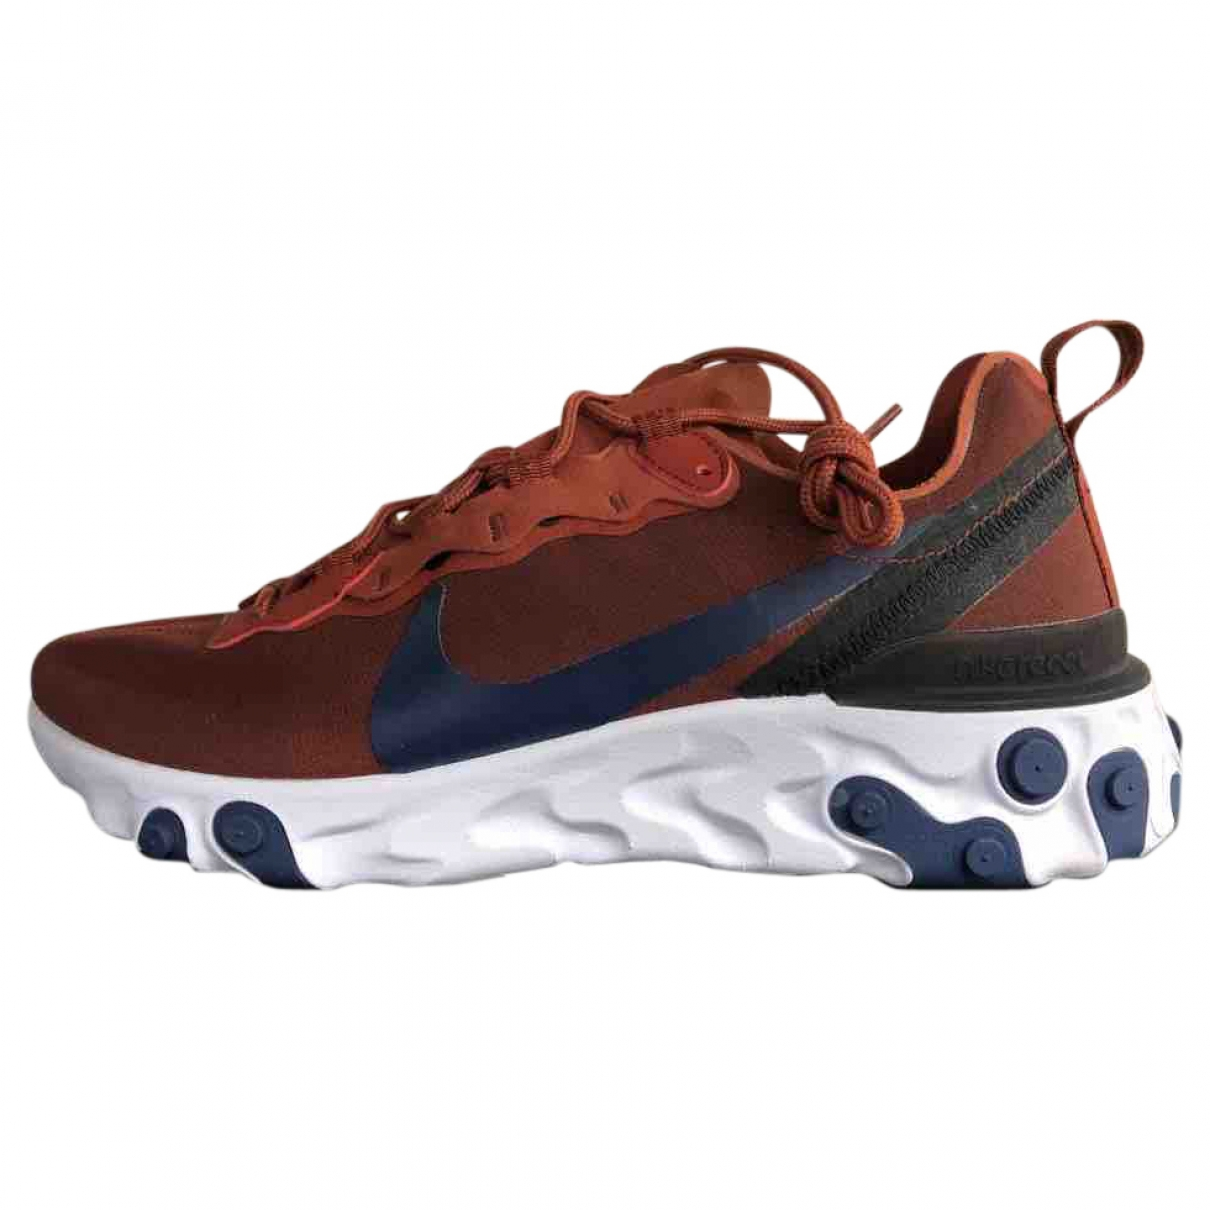 Nike React element 55 Red Cloth Trainers for Men 7.5 UK